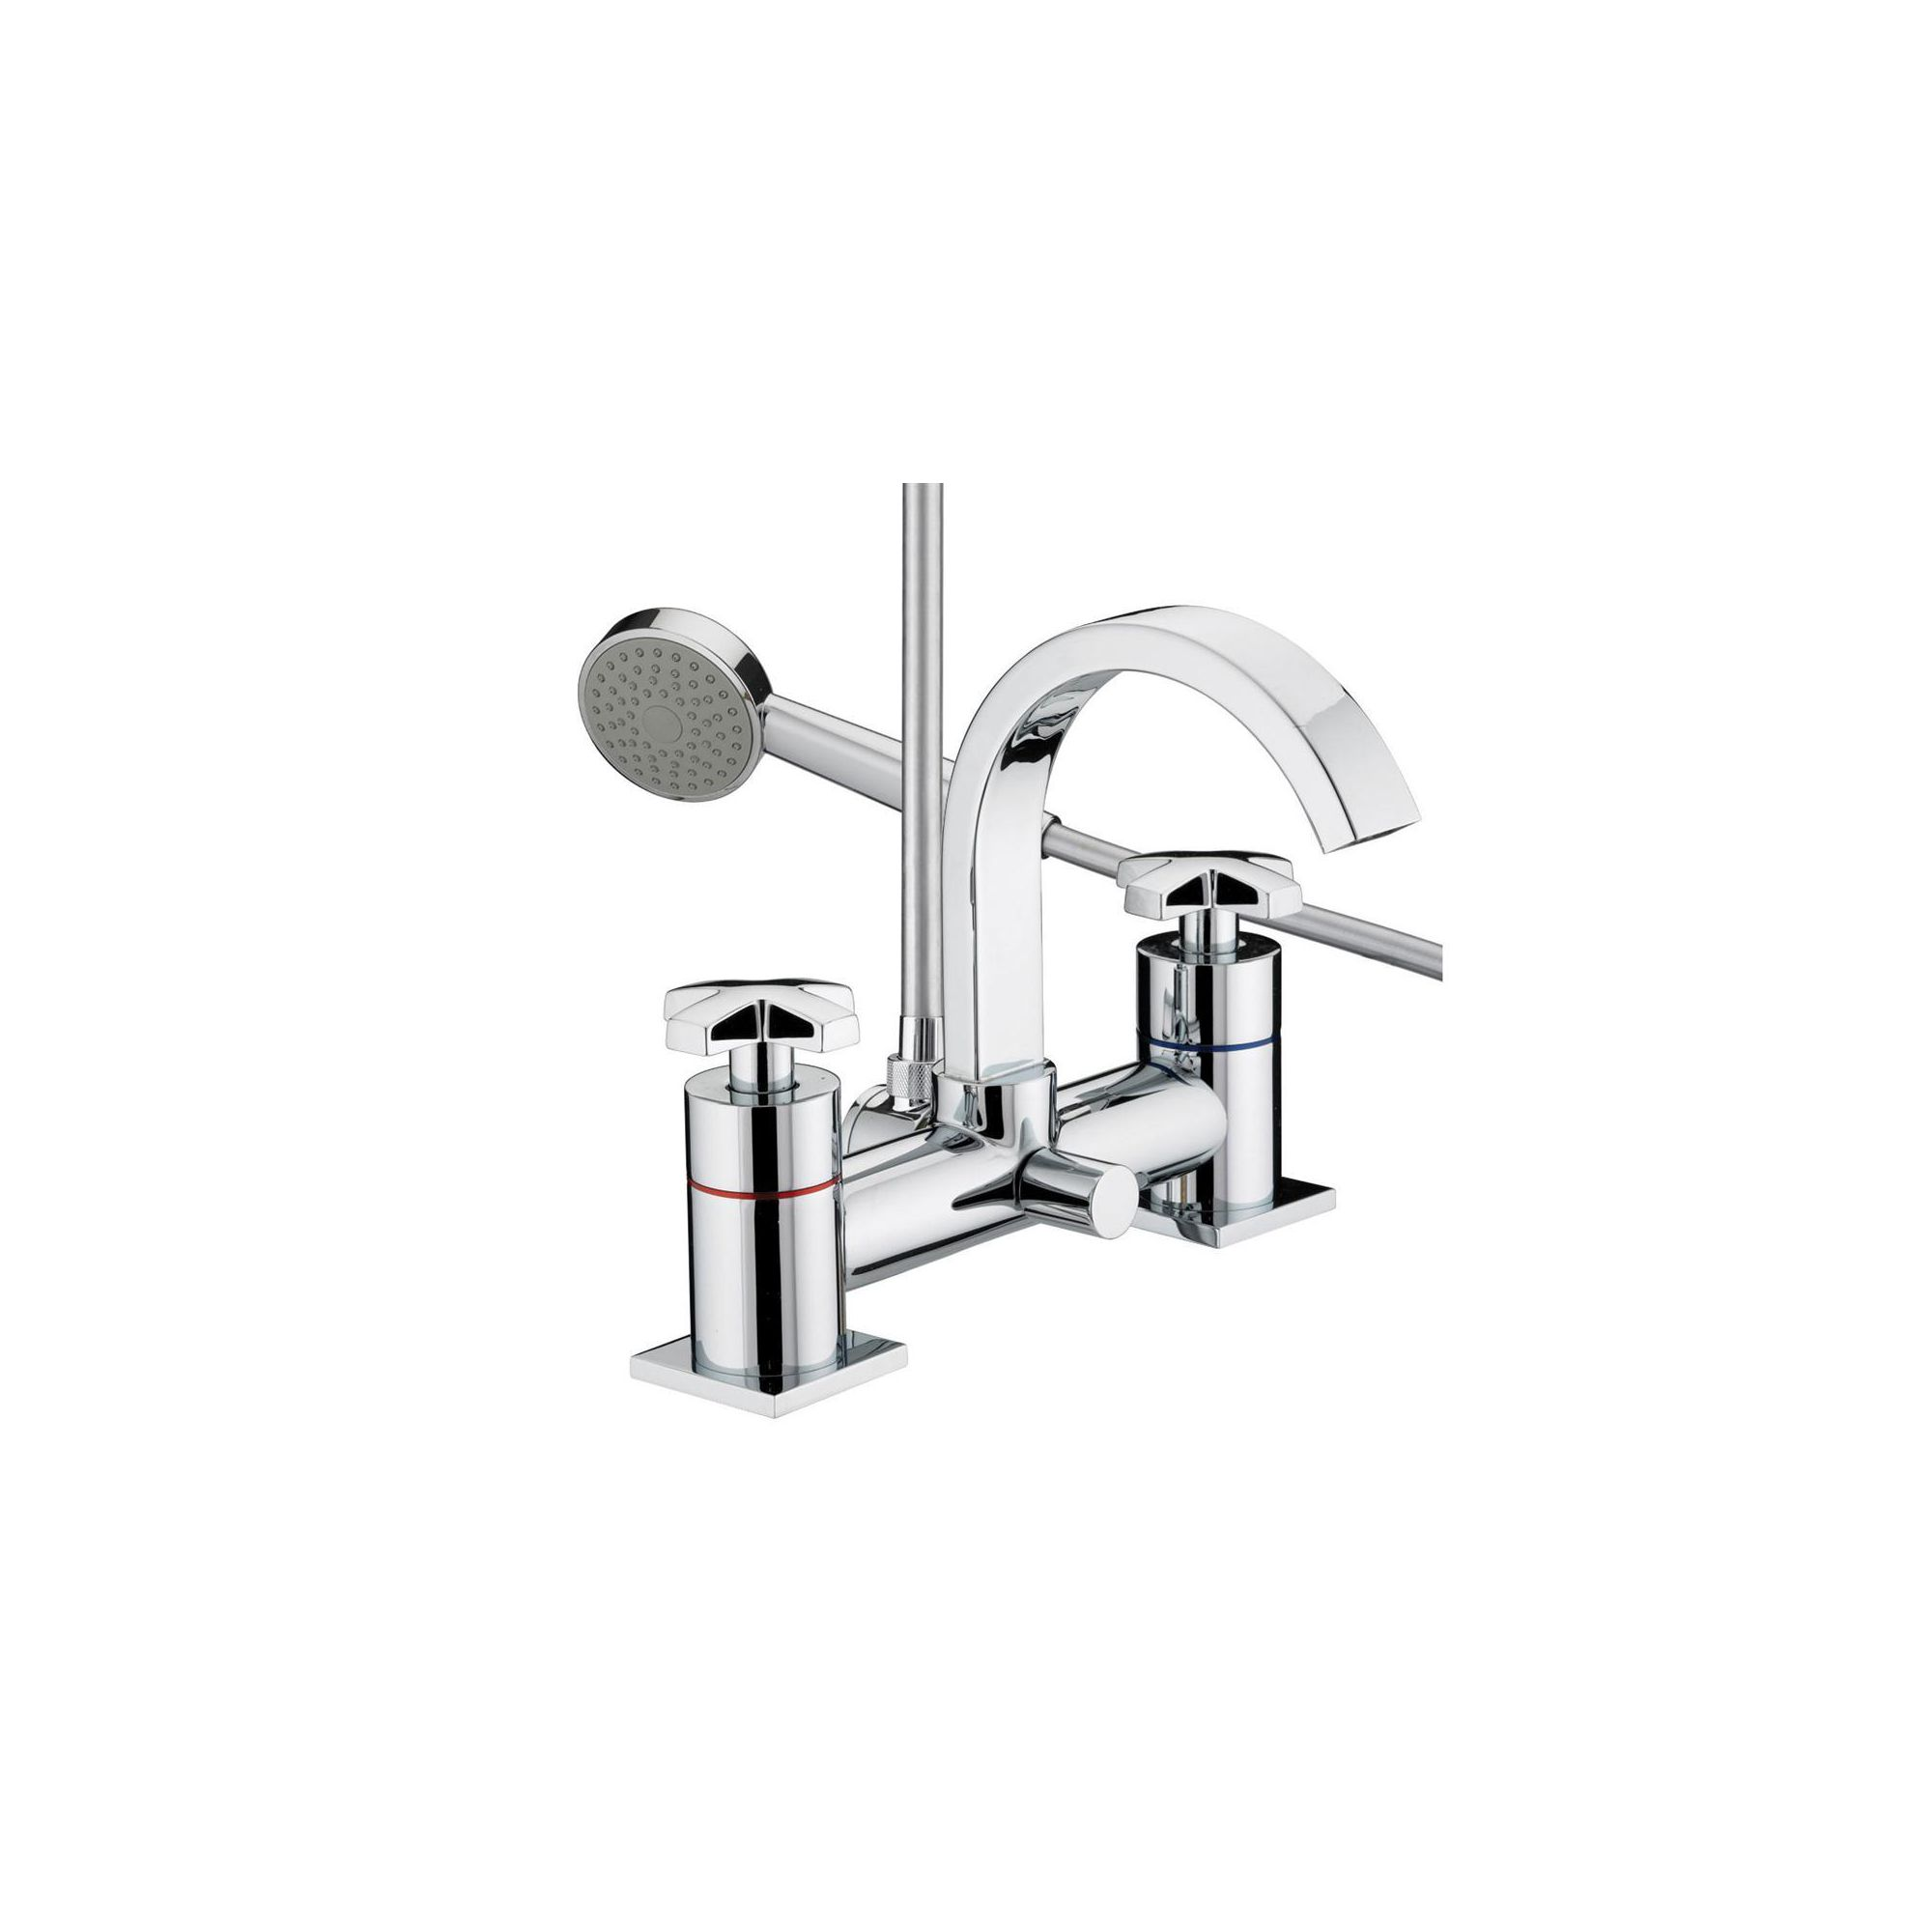 Bristan Moloko Bath Shower Mixer Tap Chrome Plated at Tesco Direct